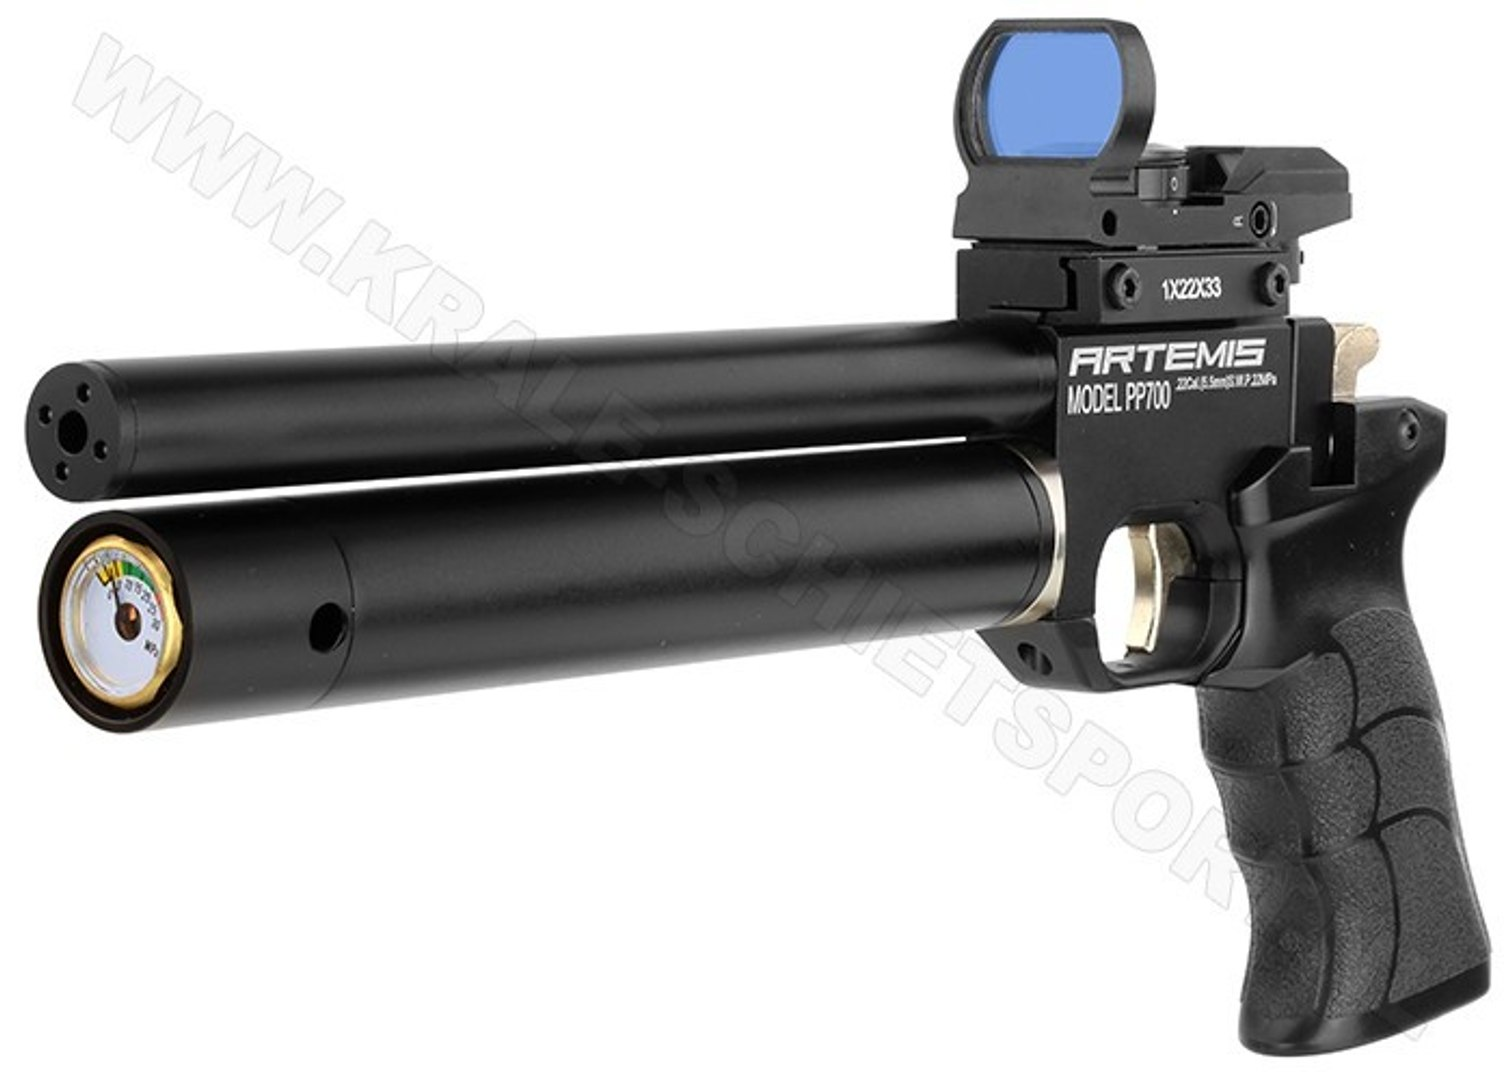 new pcp pistol hunting ARTEMIS PP700-a